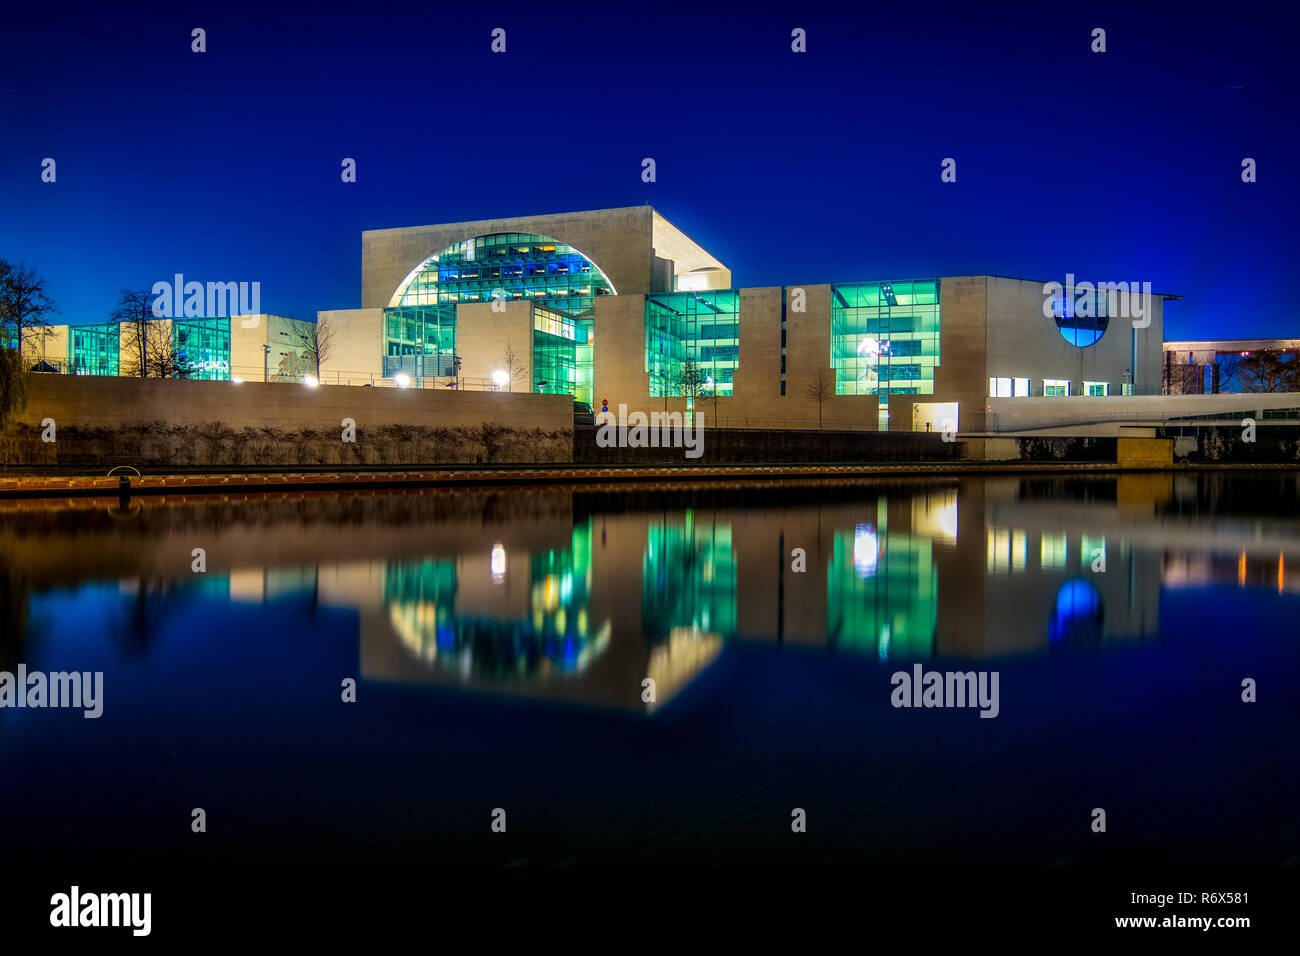 Night shot of the Bundeskanzler amt (chancellor office) seen from the river Spree with reflections in water - Stock Image